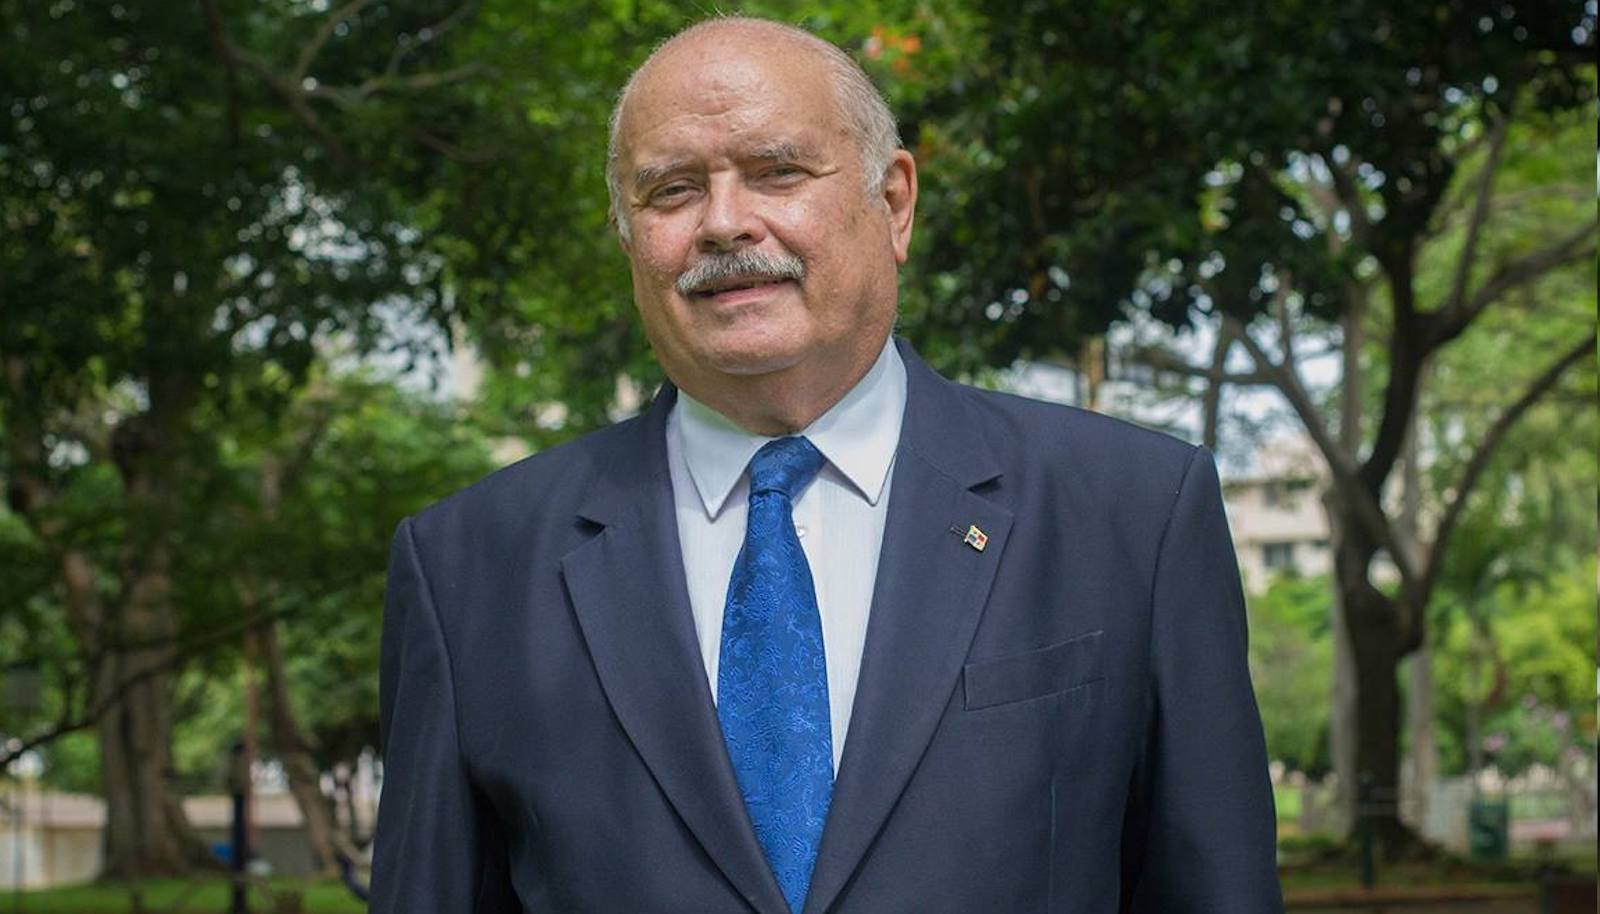 Plight with Panamanian Institutions: An Interview with Independent Presidential Hopeful Dr. Miguel Antonio Bernal